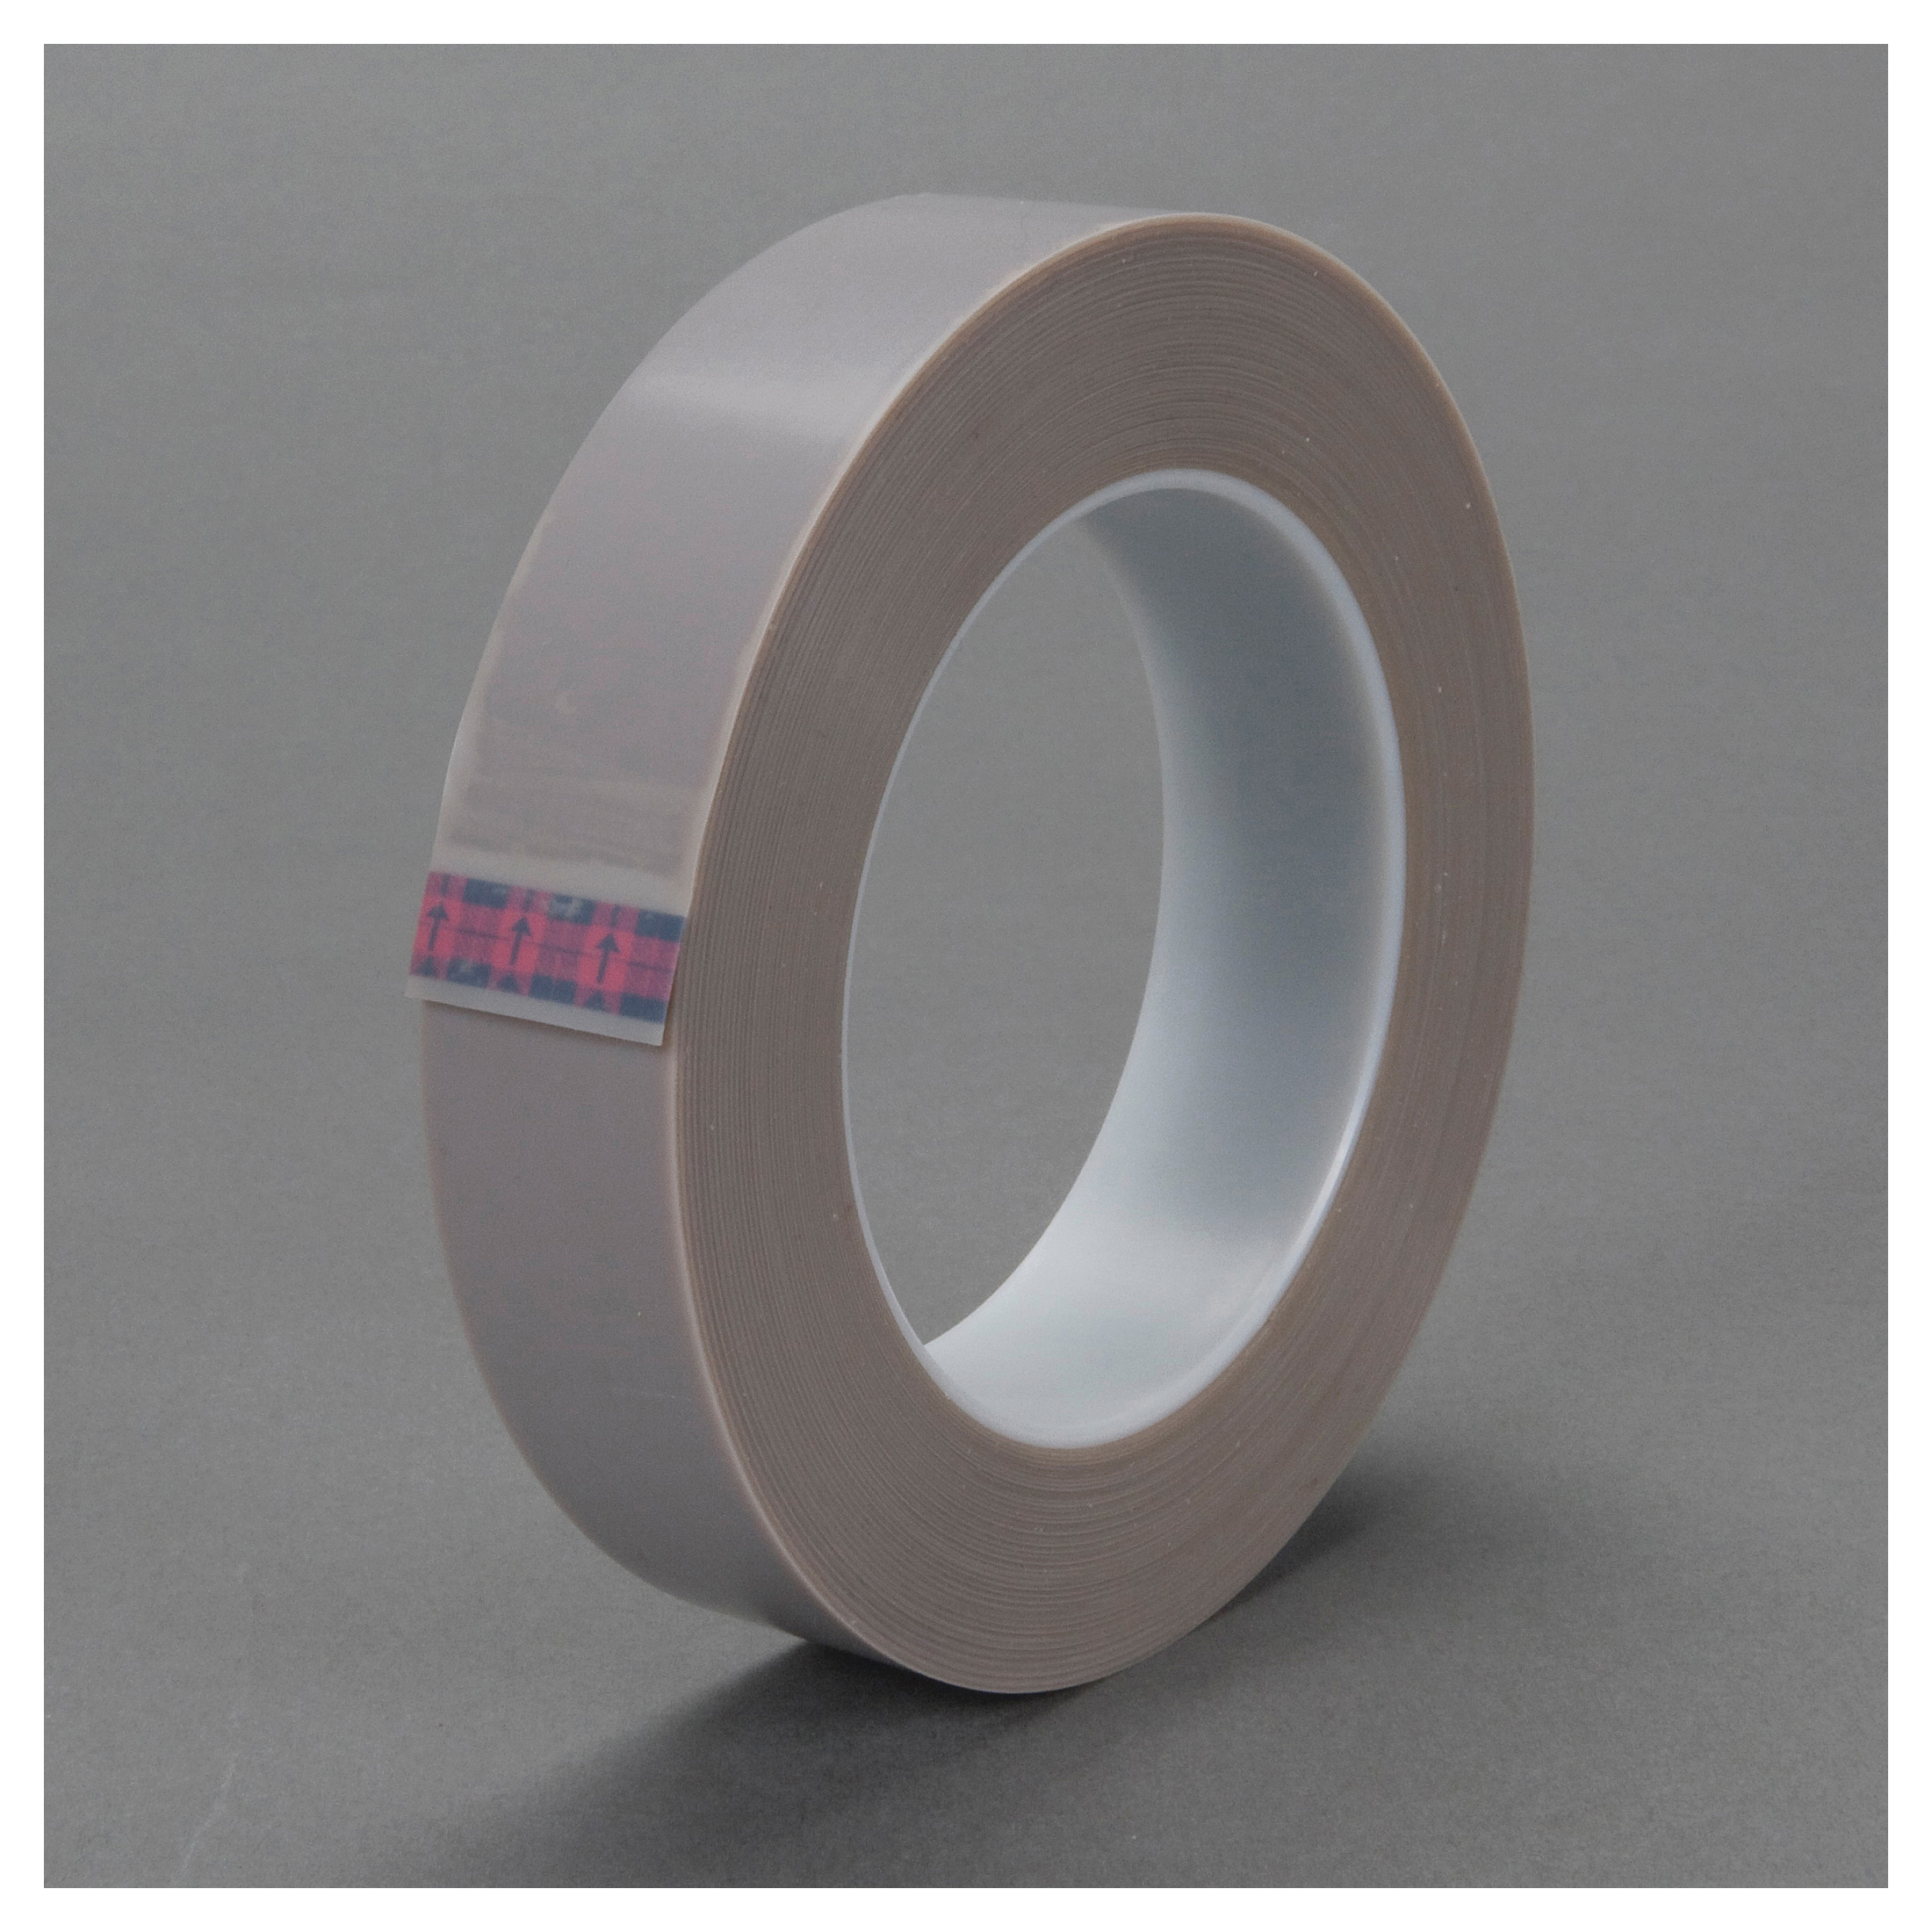 3M™ 021200-18895 Heavy Duty Film Tape, 36 yd L x 3/4 in W, 6.8 mil THK, Silicon Adhesive, Skived PTFE Backing, Gray